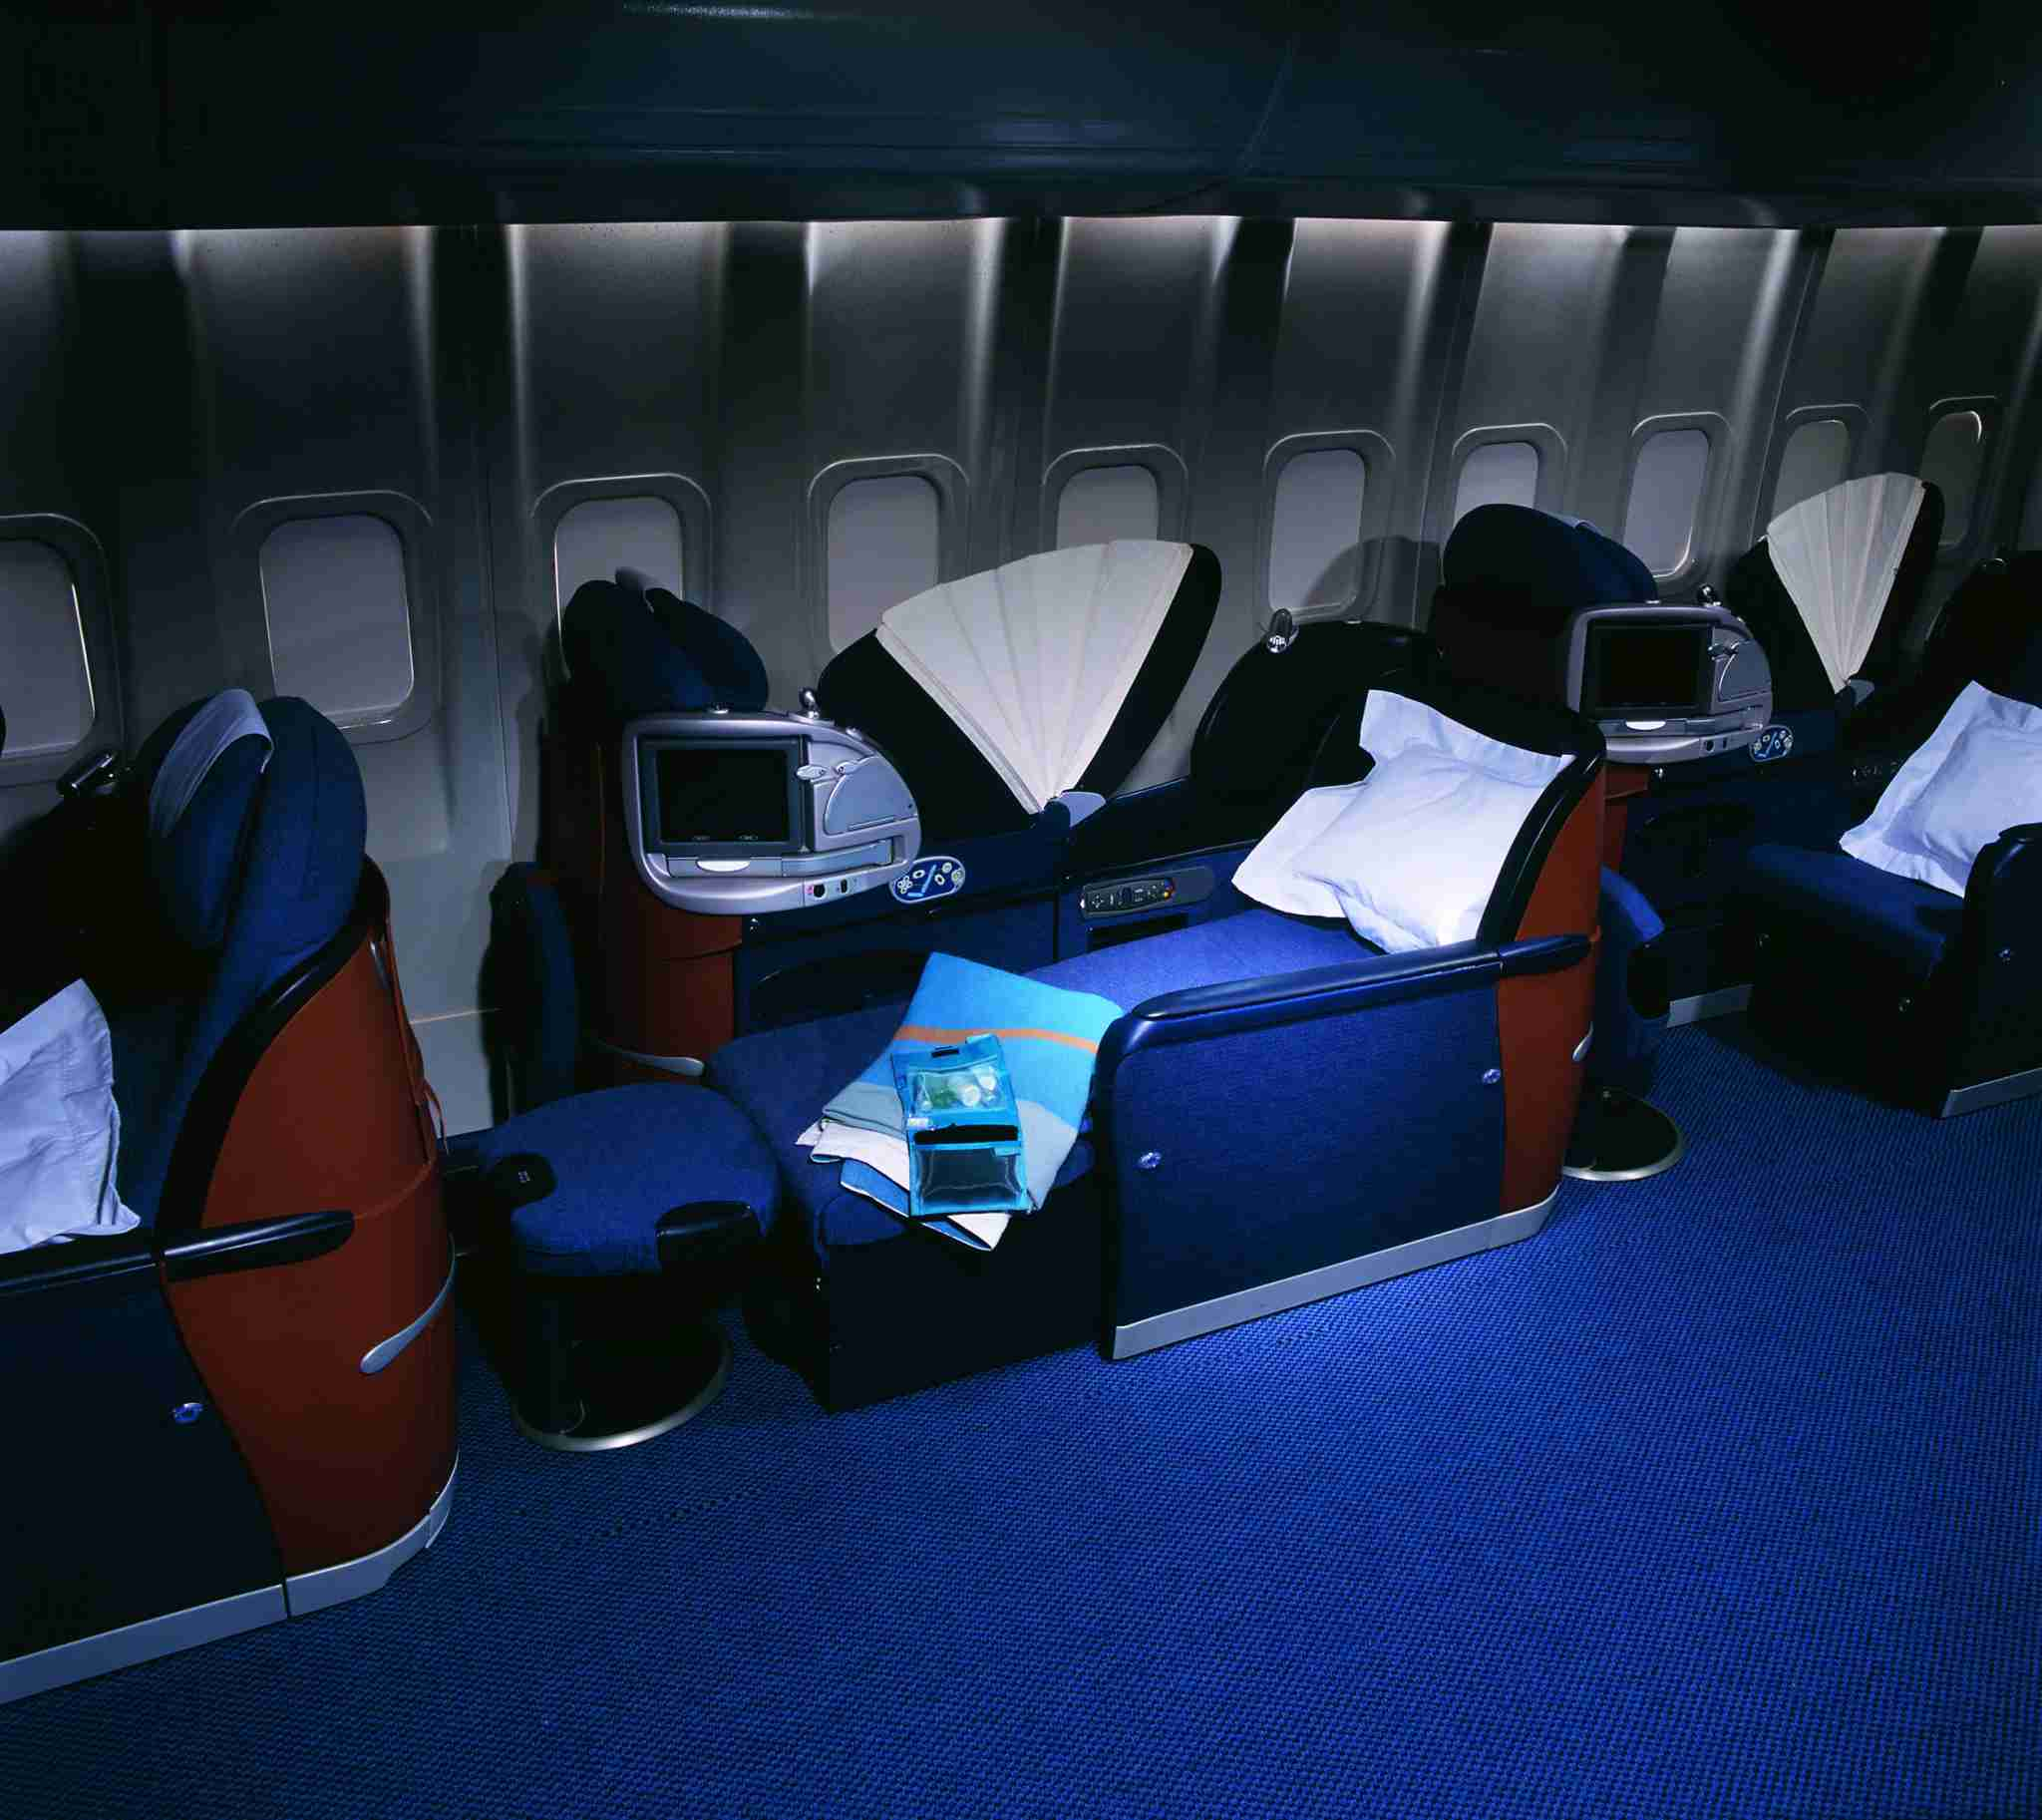 British Airways was first to market a fully flat bed in business class, called Club World. Image courtesy of British Airways.